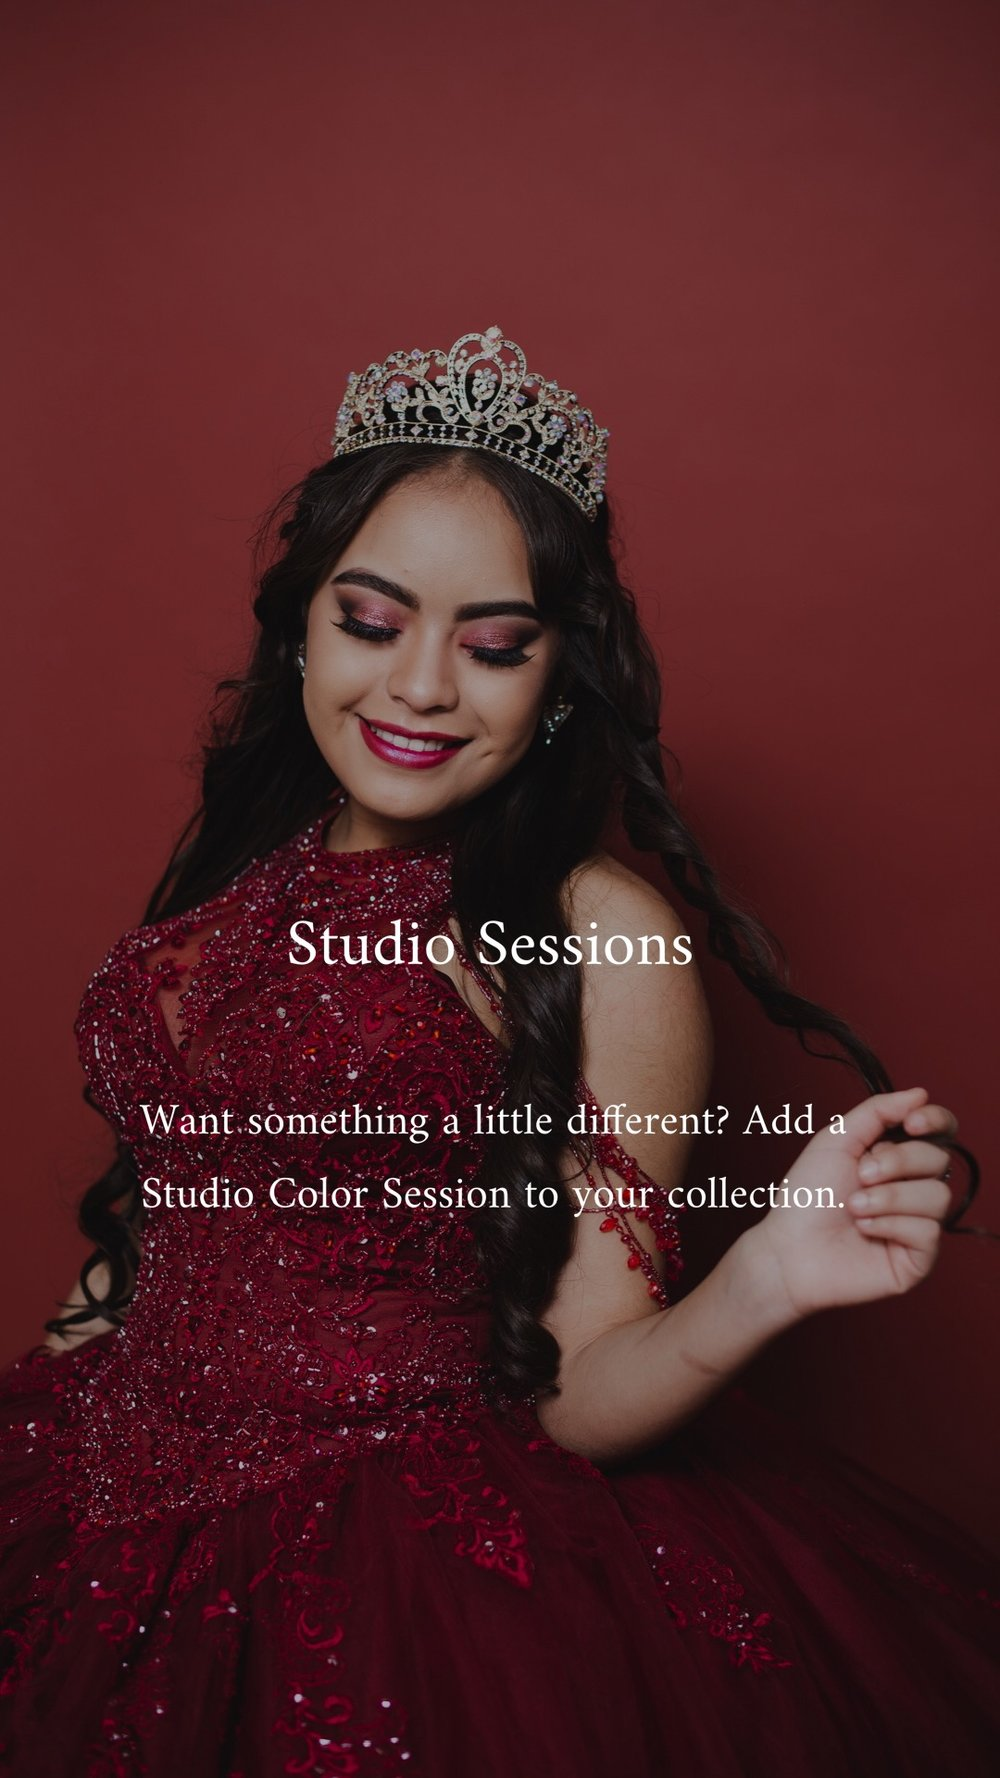 Quinceanera Dresses ideas hairstyles themes decorations photography poses cakes photoshoot houston texas best quinceanera photographer cinderella theme idea houston wedding quince sweet 16 batmitzvah mar mitvahquinceanera best photographer katy texas engagement